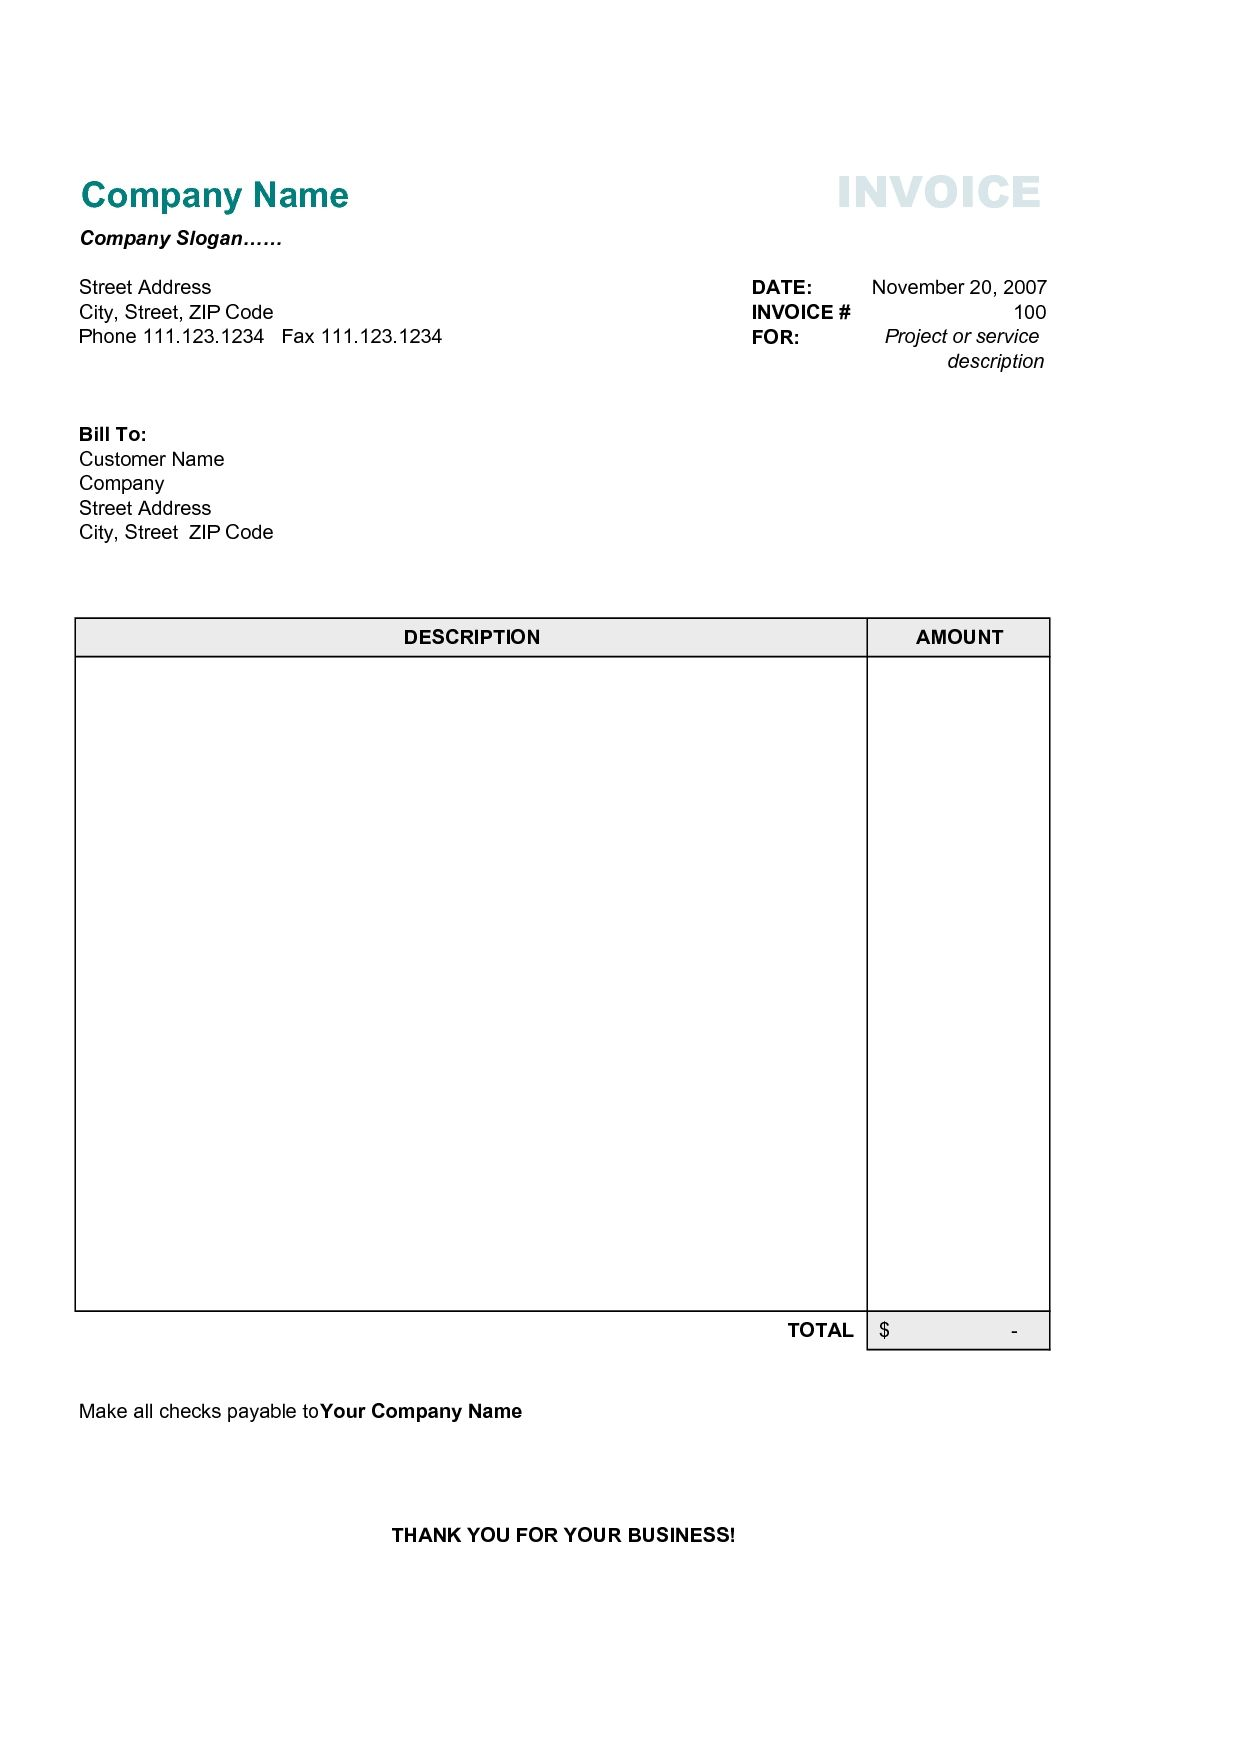 Free Business Invoice Template Best Business Template Free Invoice - Free invoice template : best invoice template